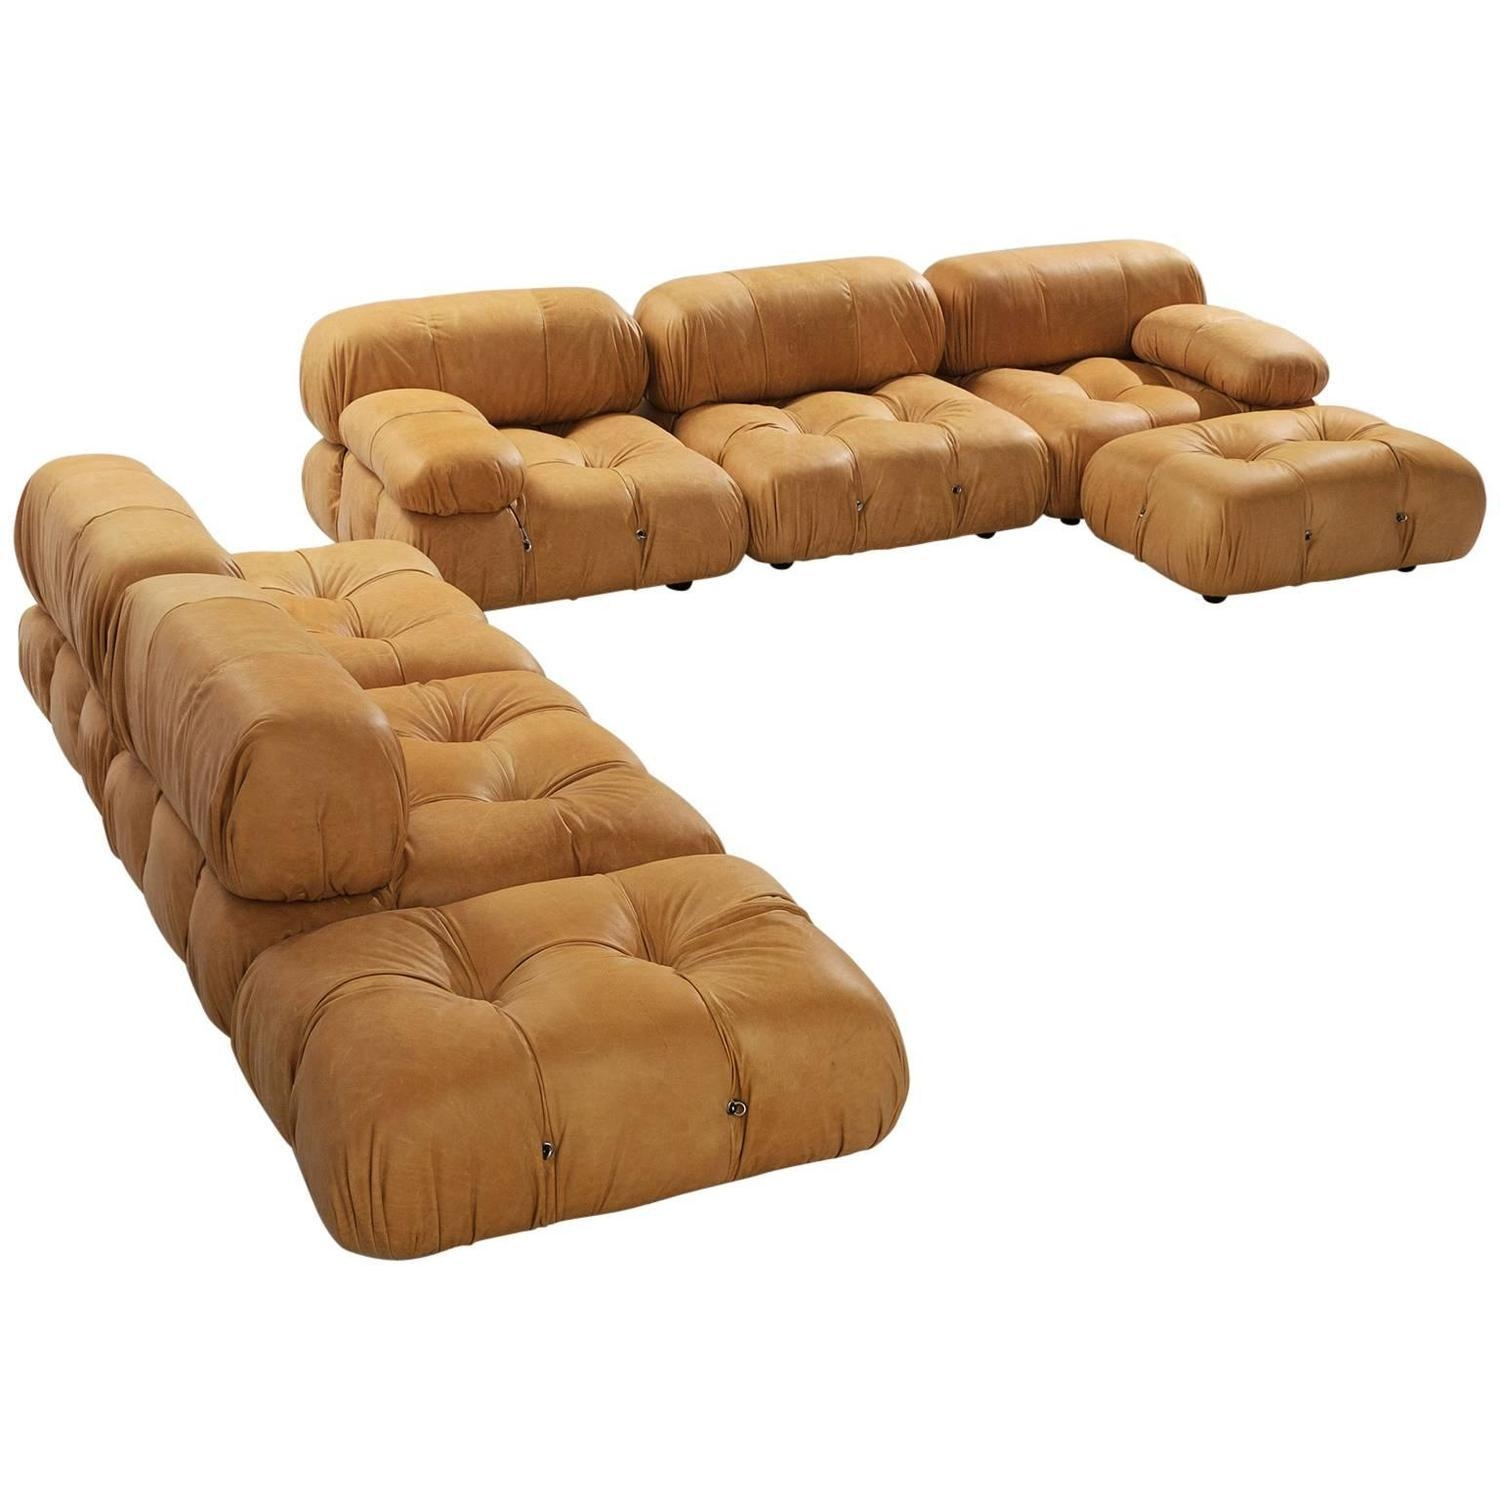 Mario Bellini Reupholstered 'camaleonda' Modular Sofa In Cognac Inside Bellini Sofas (View 20 of 20)